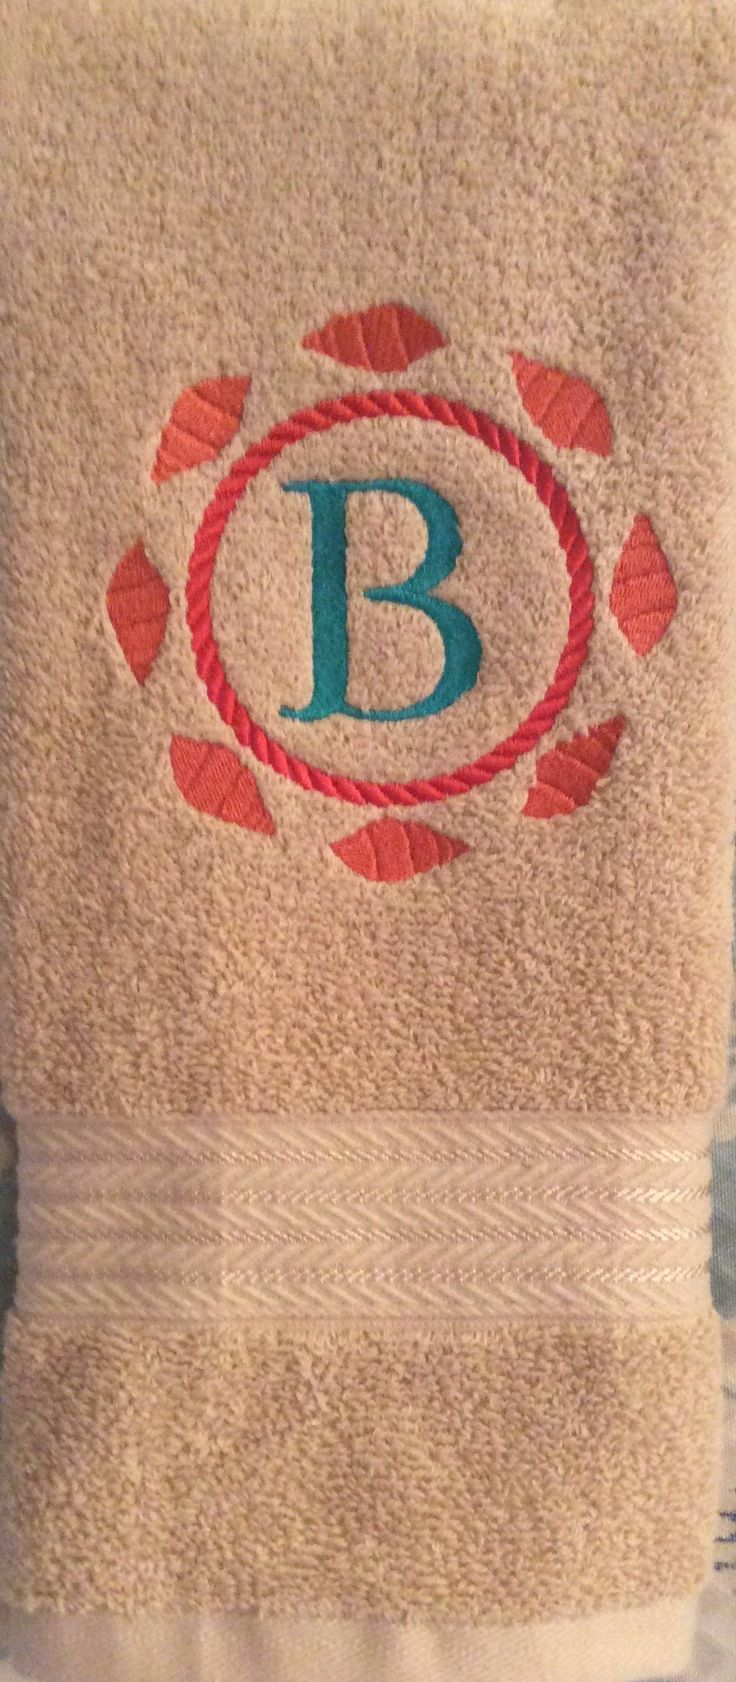 """Embroidered Tea Towel, Cotton, """"B"""" Light Brown w/Teal, Salmon Color, Free Shipping"""